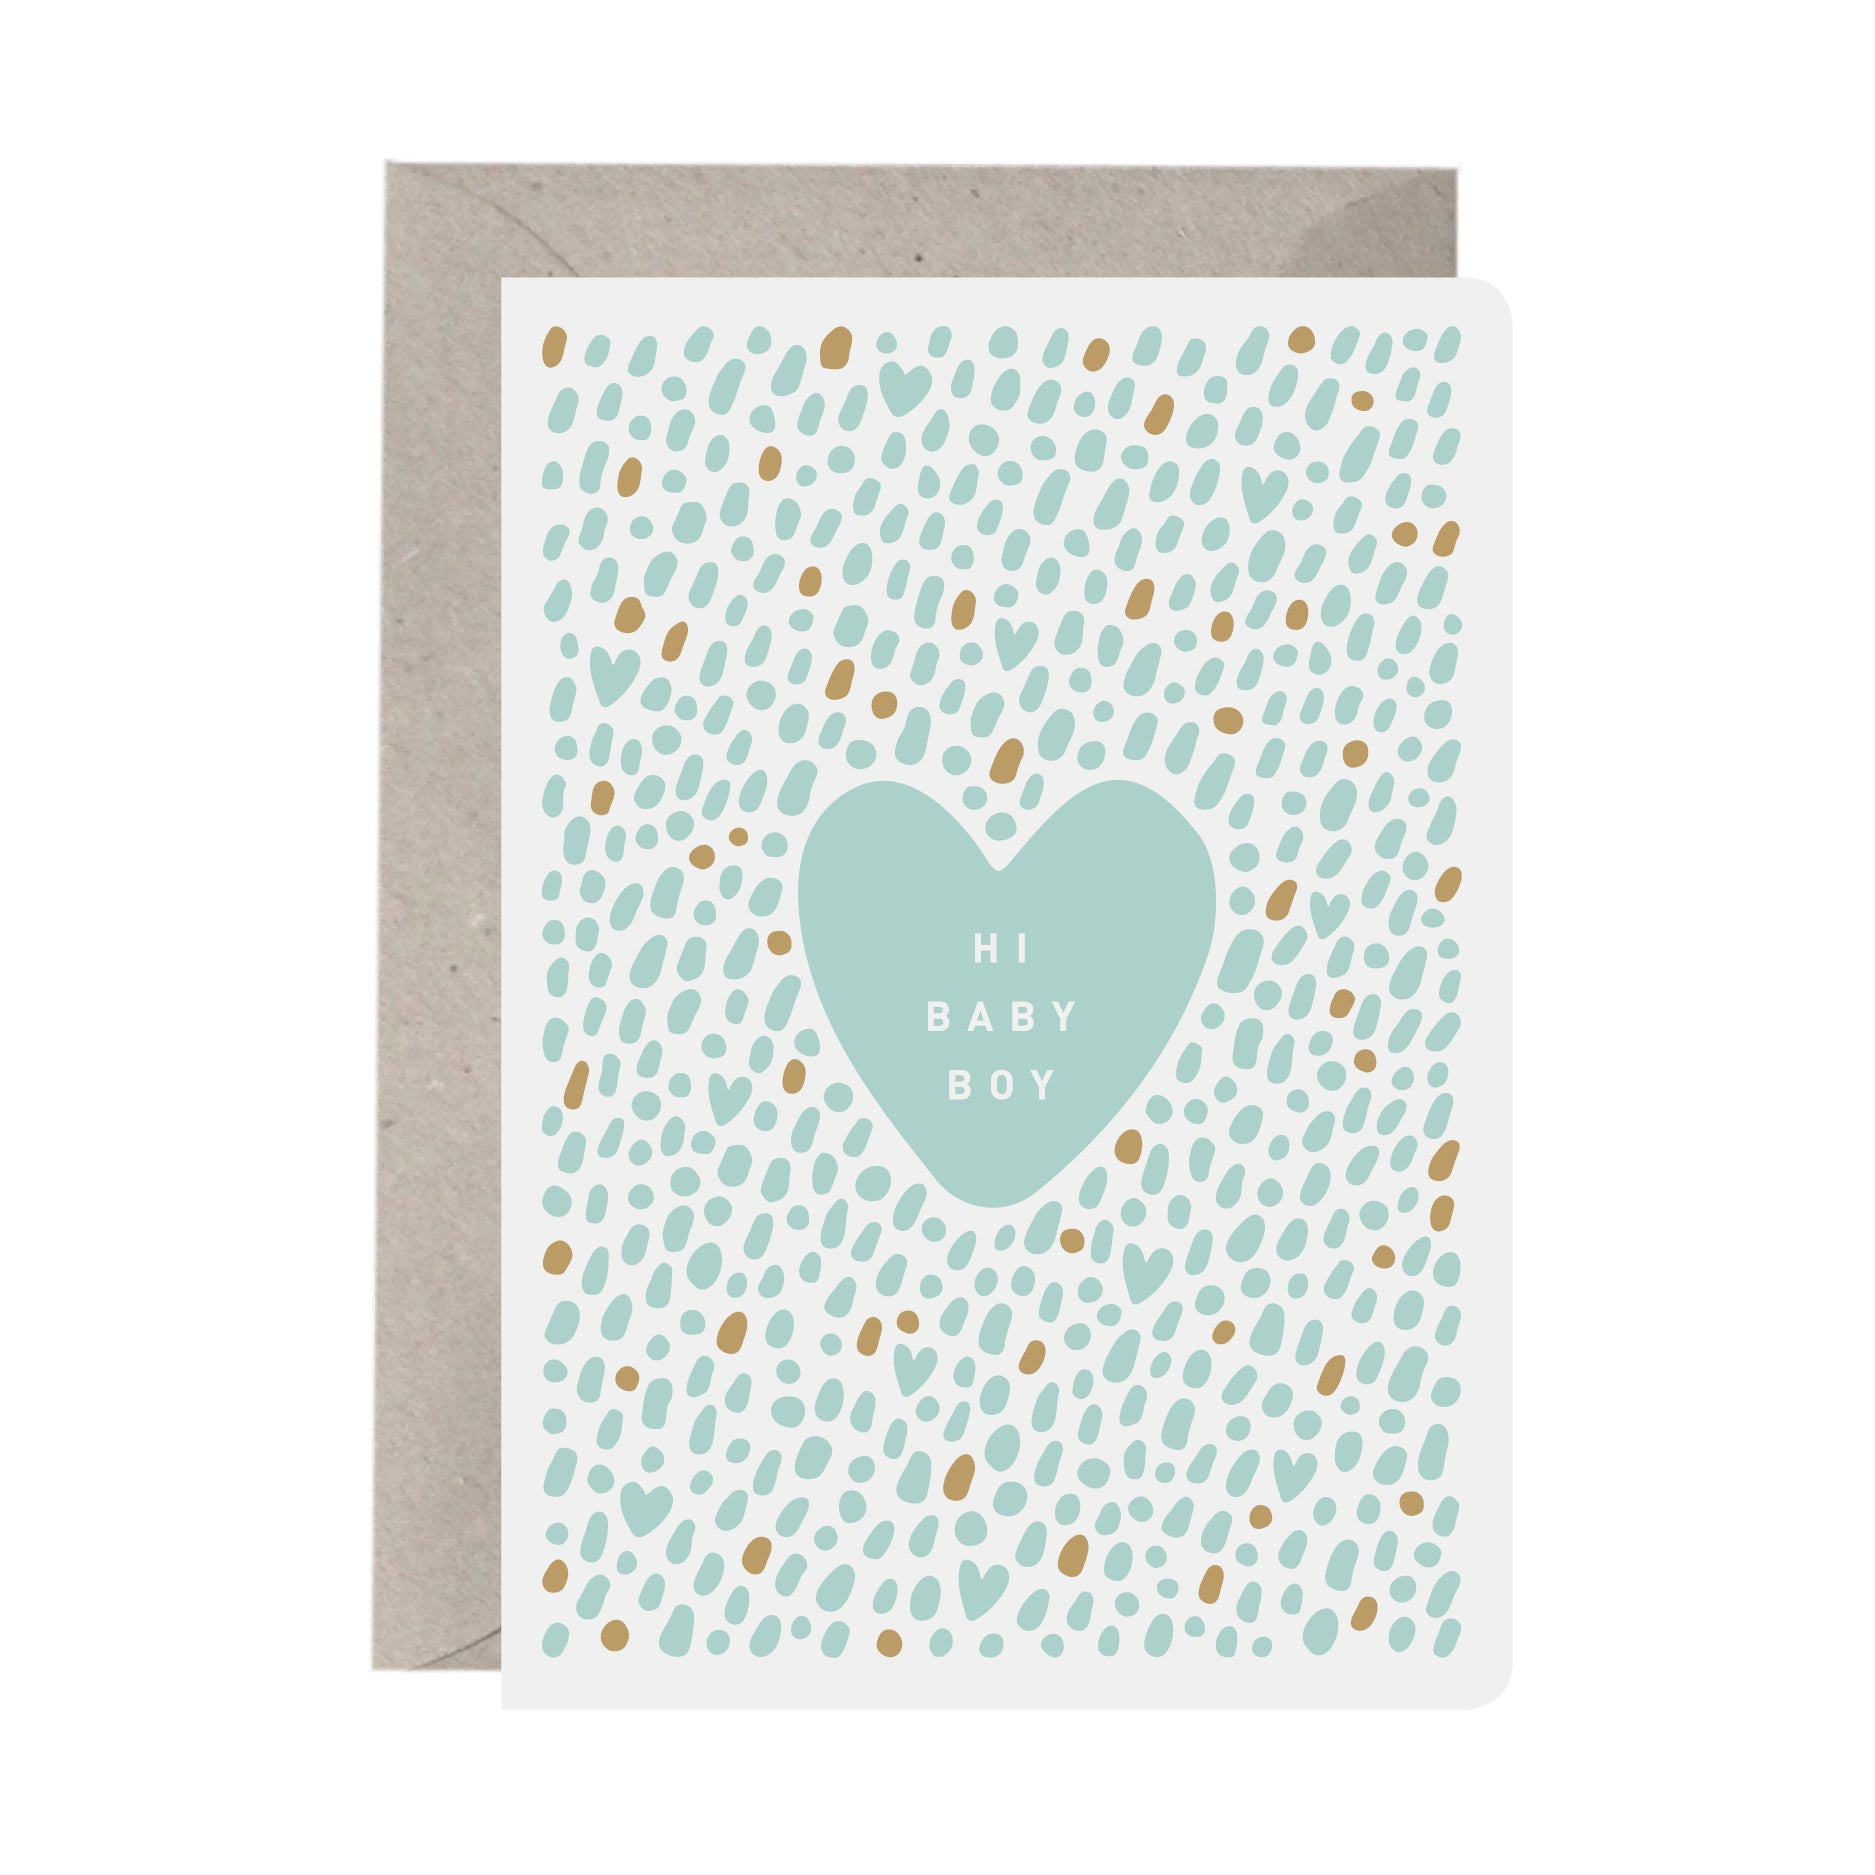 'Hi Baby Boy' New Baby Card